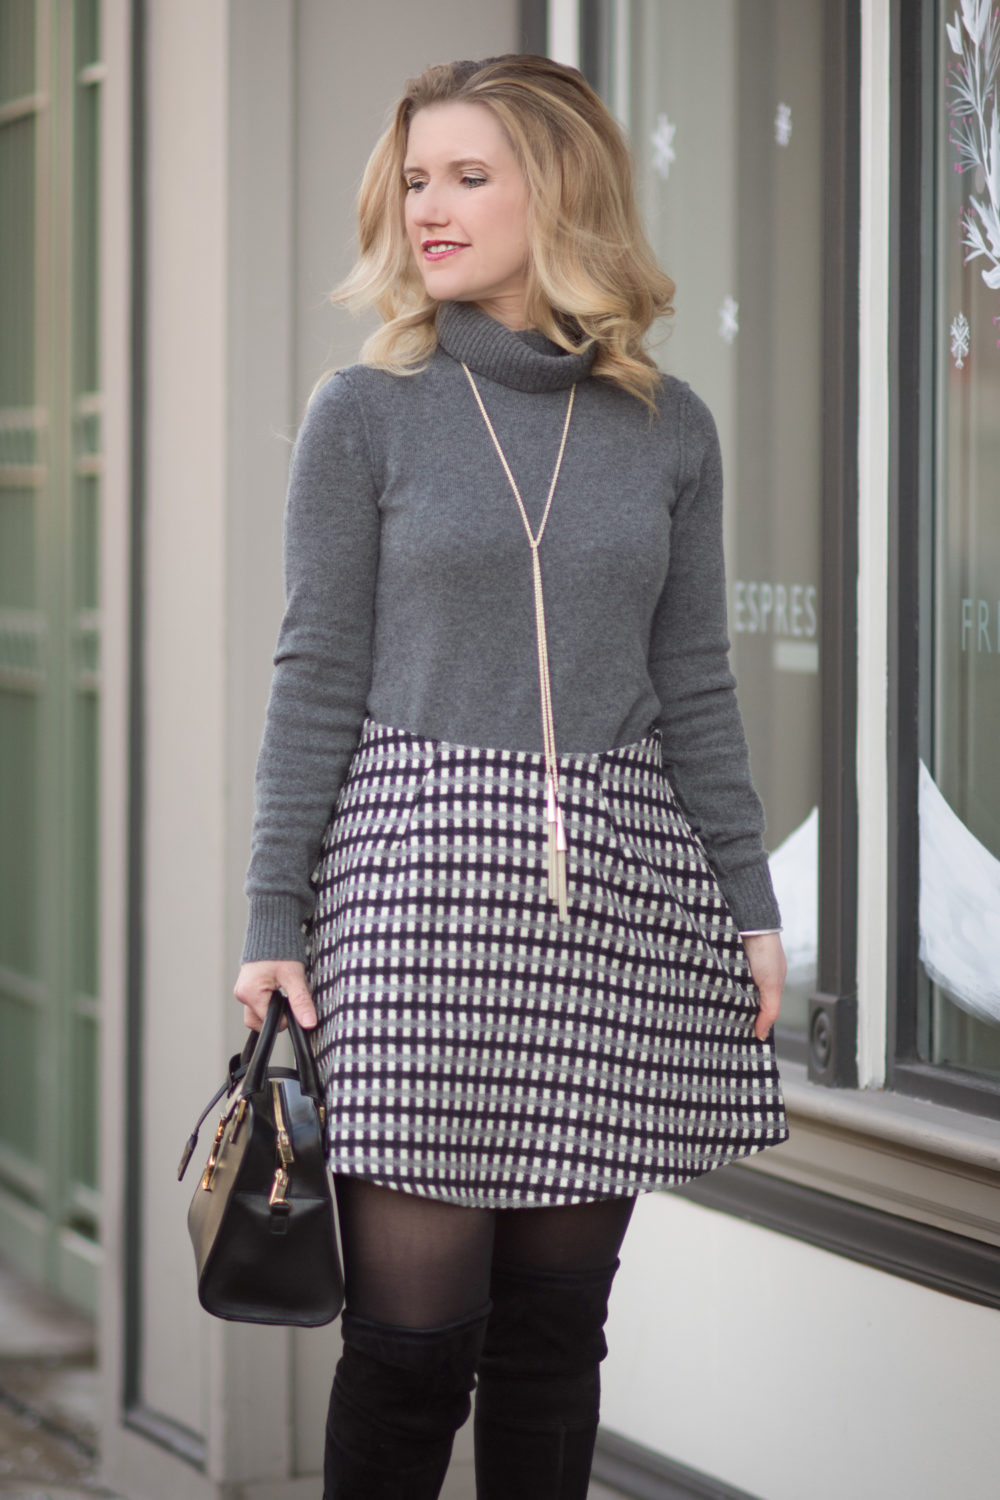 Petite Fashion and Style Blog | Fashion for Petite Women | Bloomingdale's Aqua Cashmere Turtleneck | Asos Petite Mini Flippy Skirt in Check | How To Wear Dresses in the Winter and Stay Warm